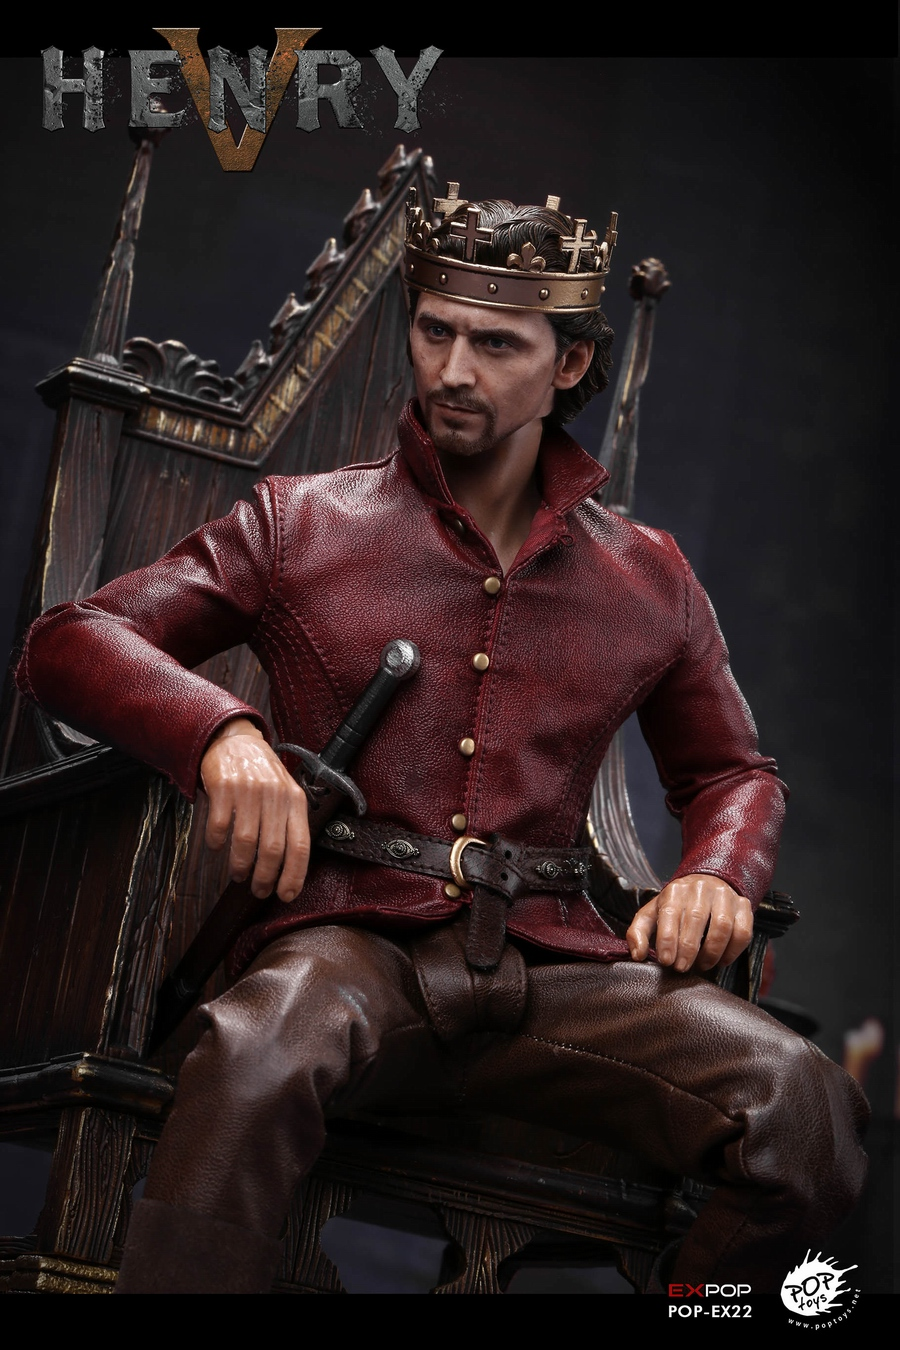 TVbased - NEW PRODUCT: POPTOYS [WF2019 Shanghai Conference Edition]: 1/6 King of England - Henry V [The Throne Edition] POP-EX22 17591810